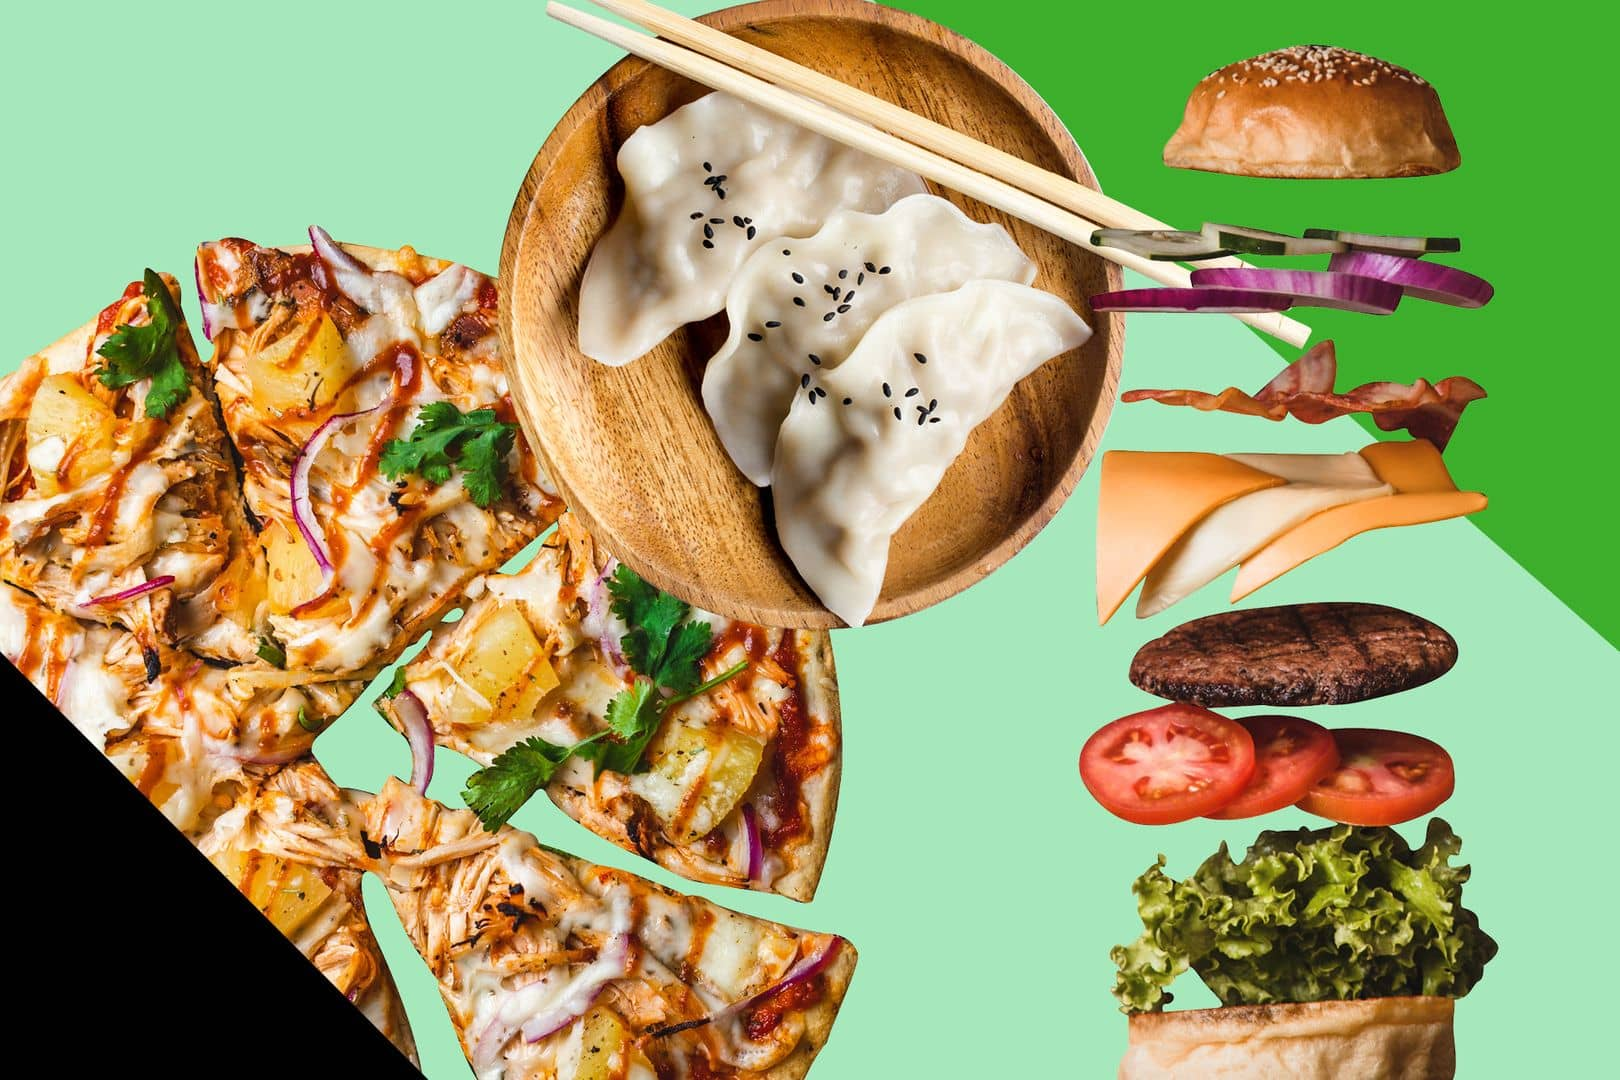 How To Find The Best Place For Ordering The Food Online